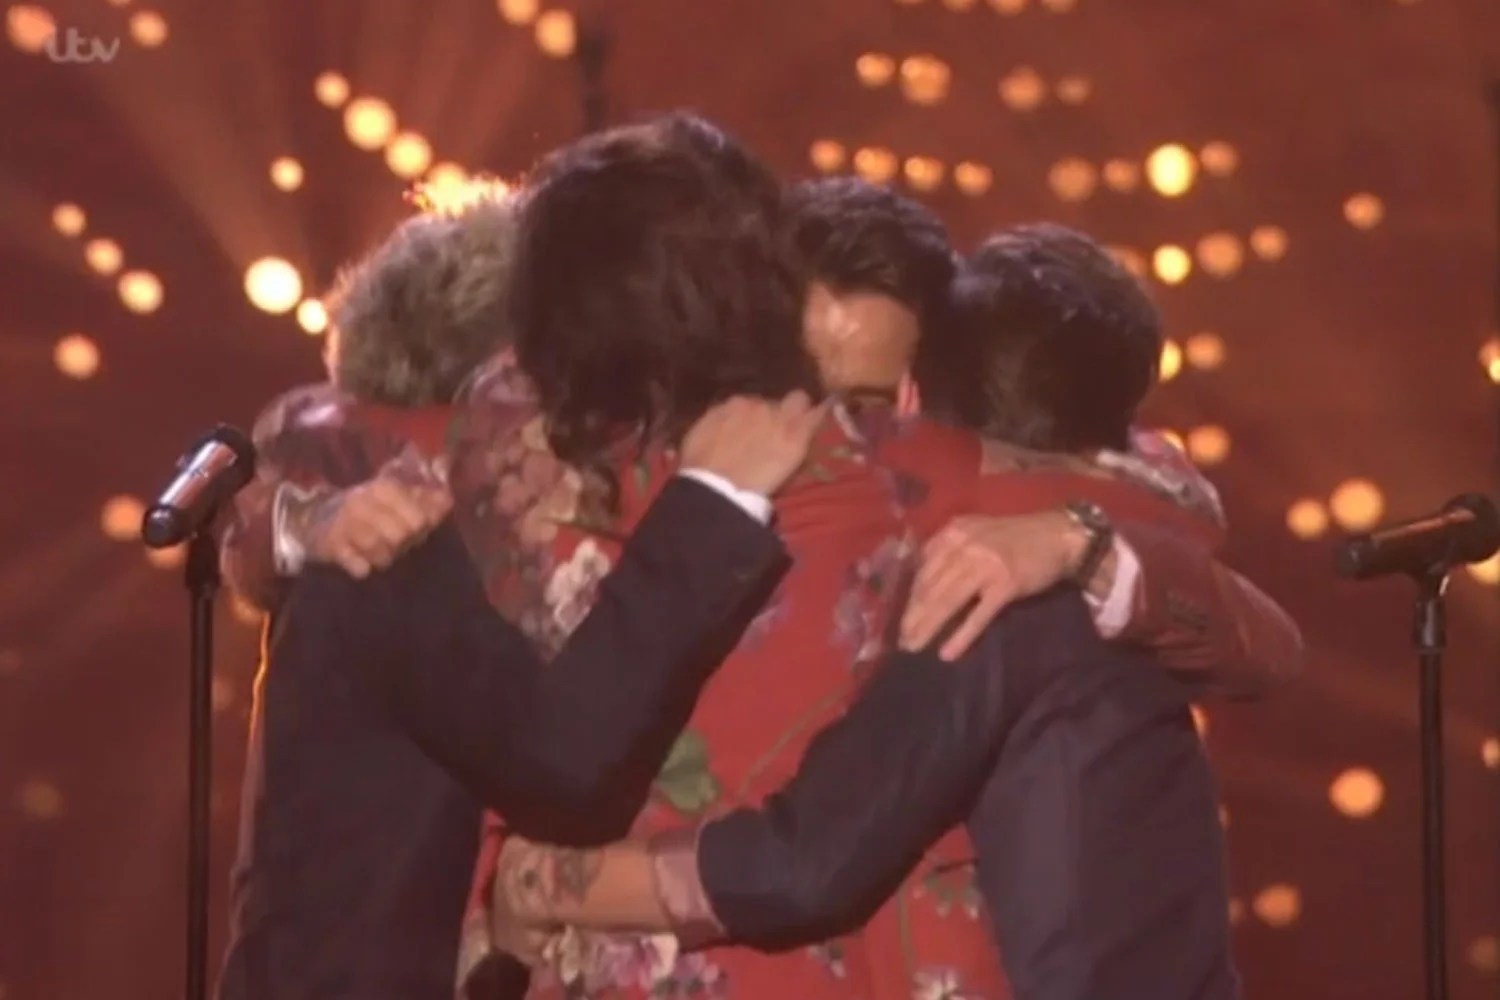 X Factor 2015 Final One Direction Give Emotional Farewell